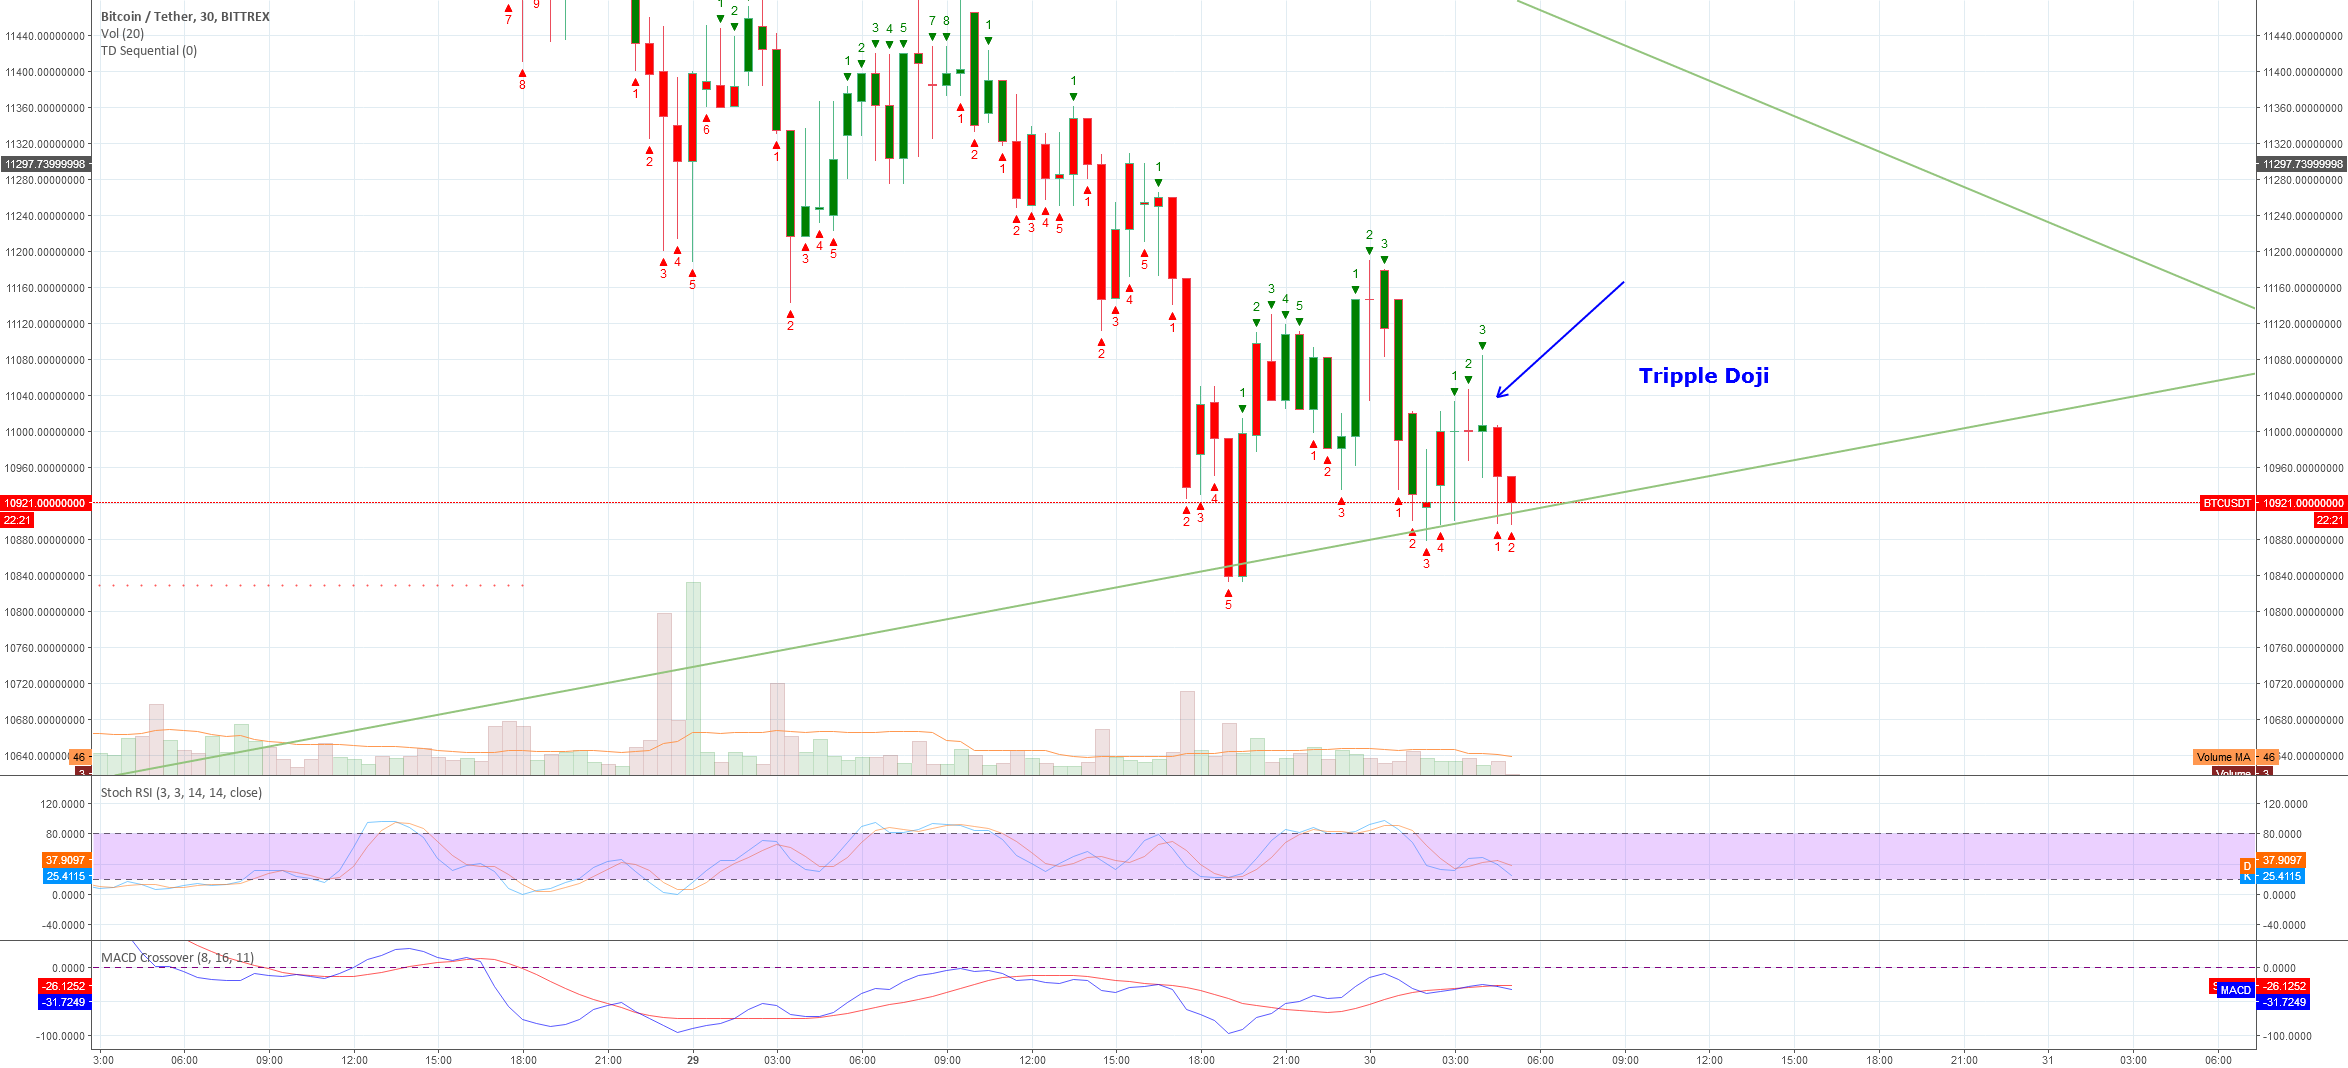 BTC Tripple doji hit - significant trend reversal coming up.